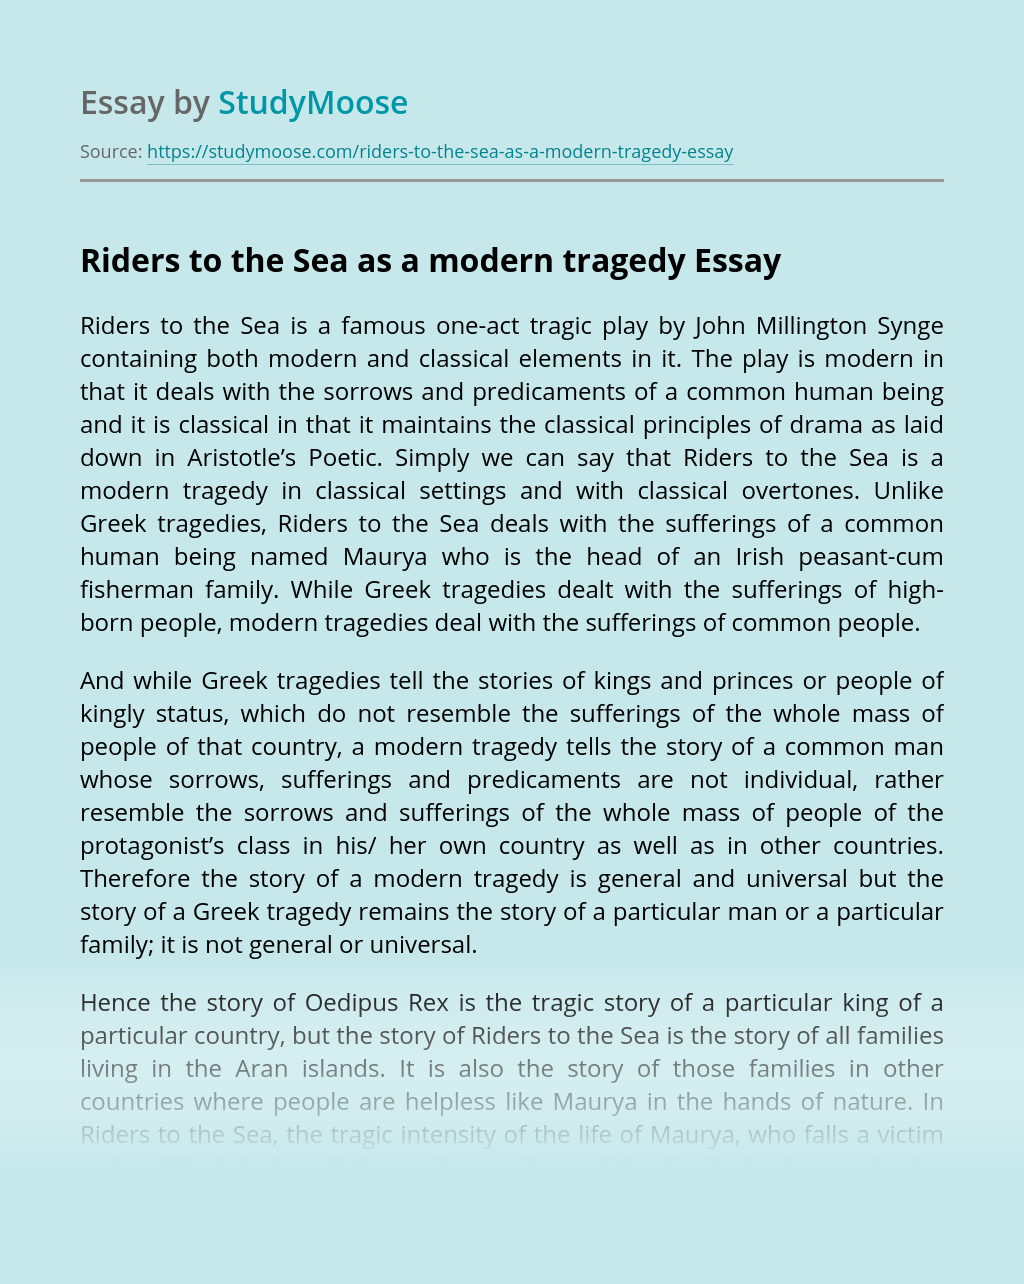 Riders to the Sea as a modern tragedy